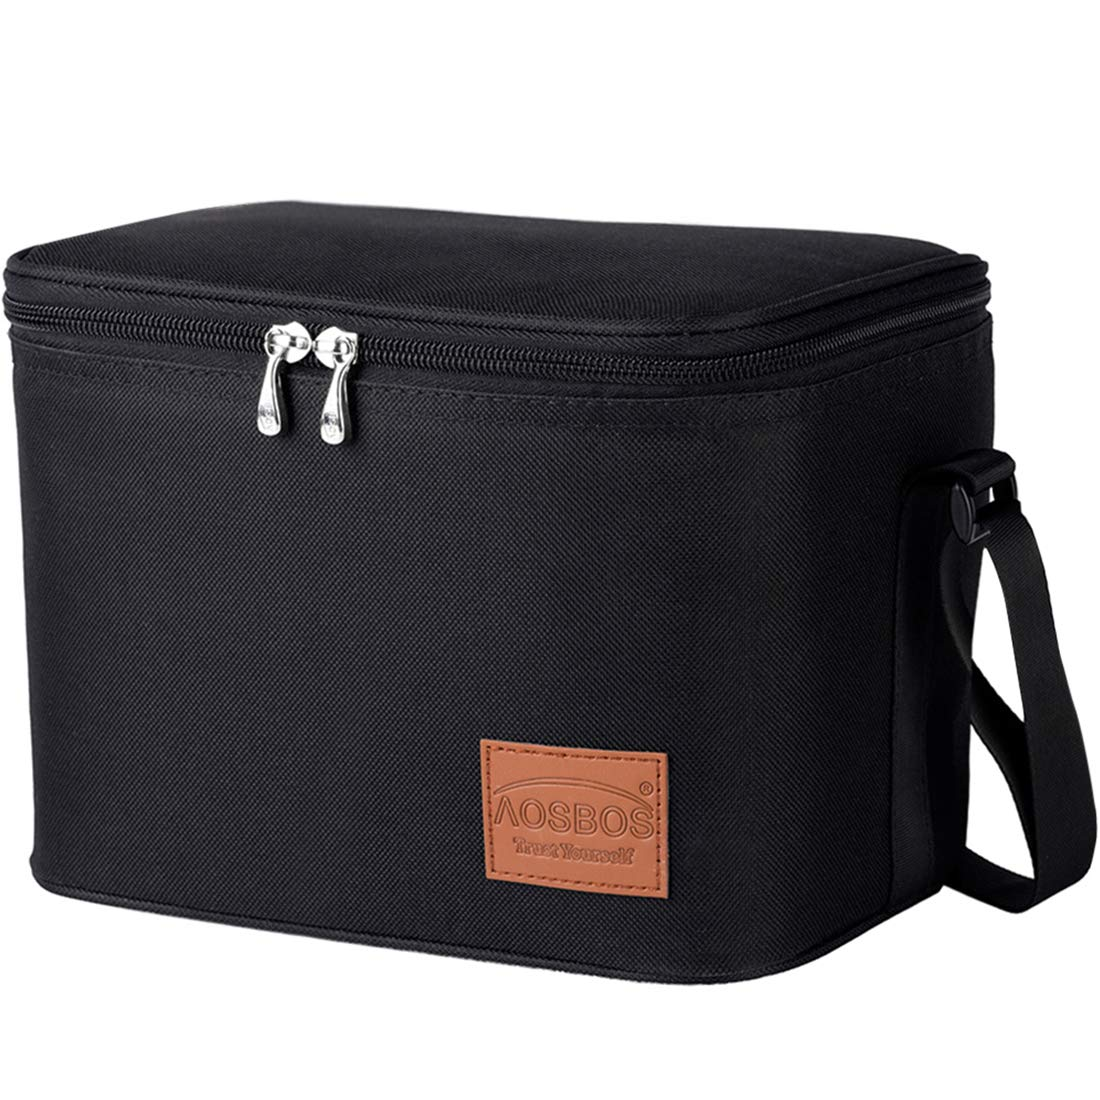 Aosbos Insulated Lunch Box Bag Cooler Reusable Tote Bag Women Men 7.5L Black by Aosbos